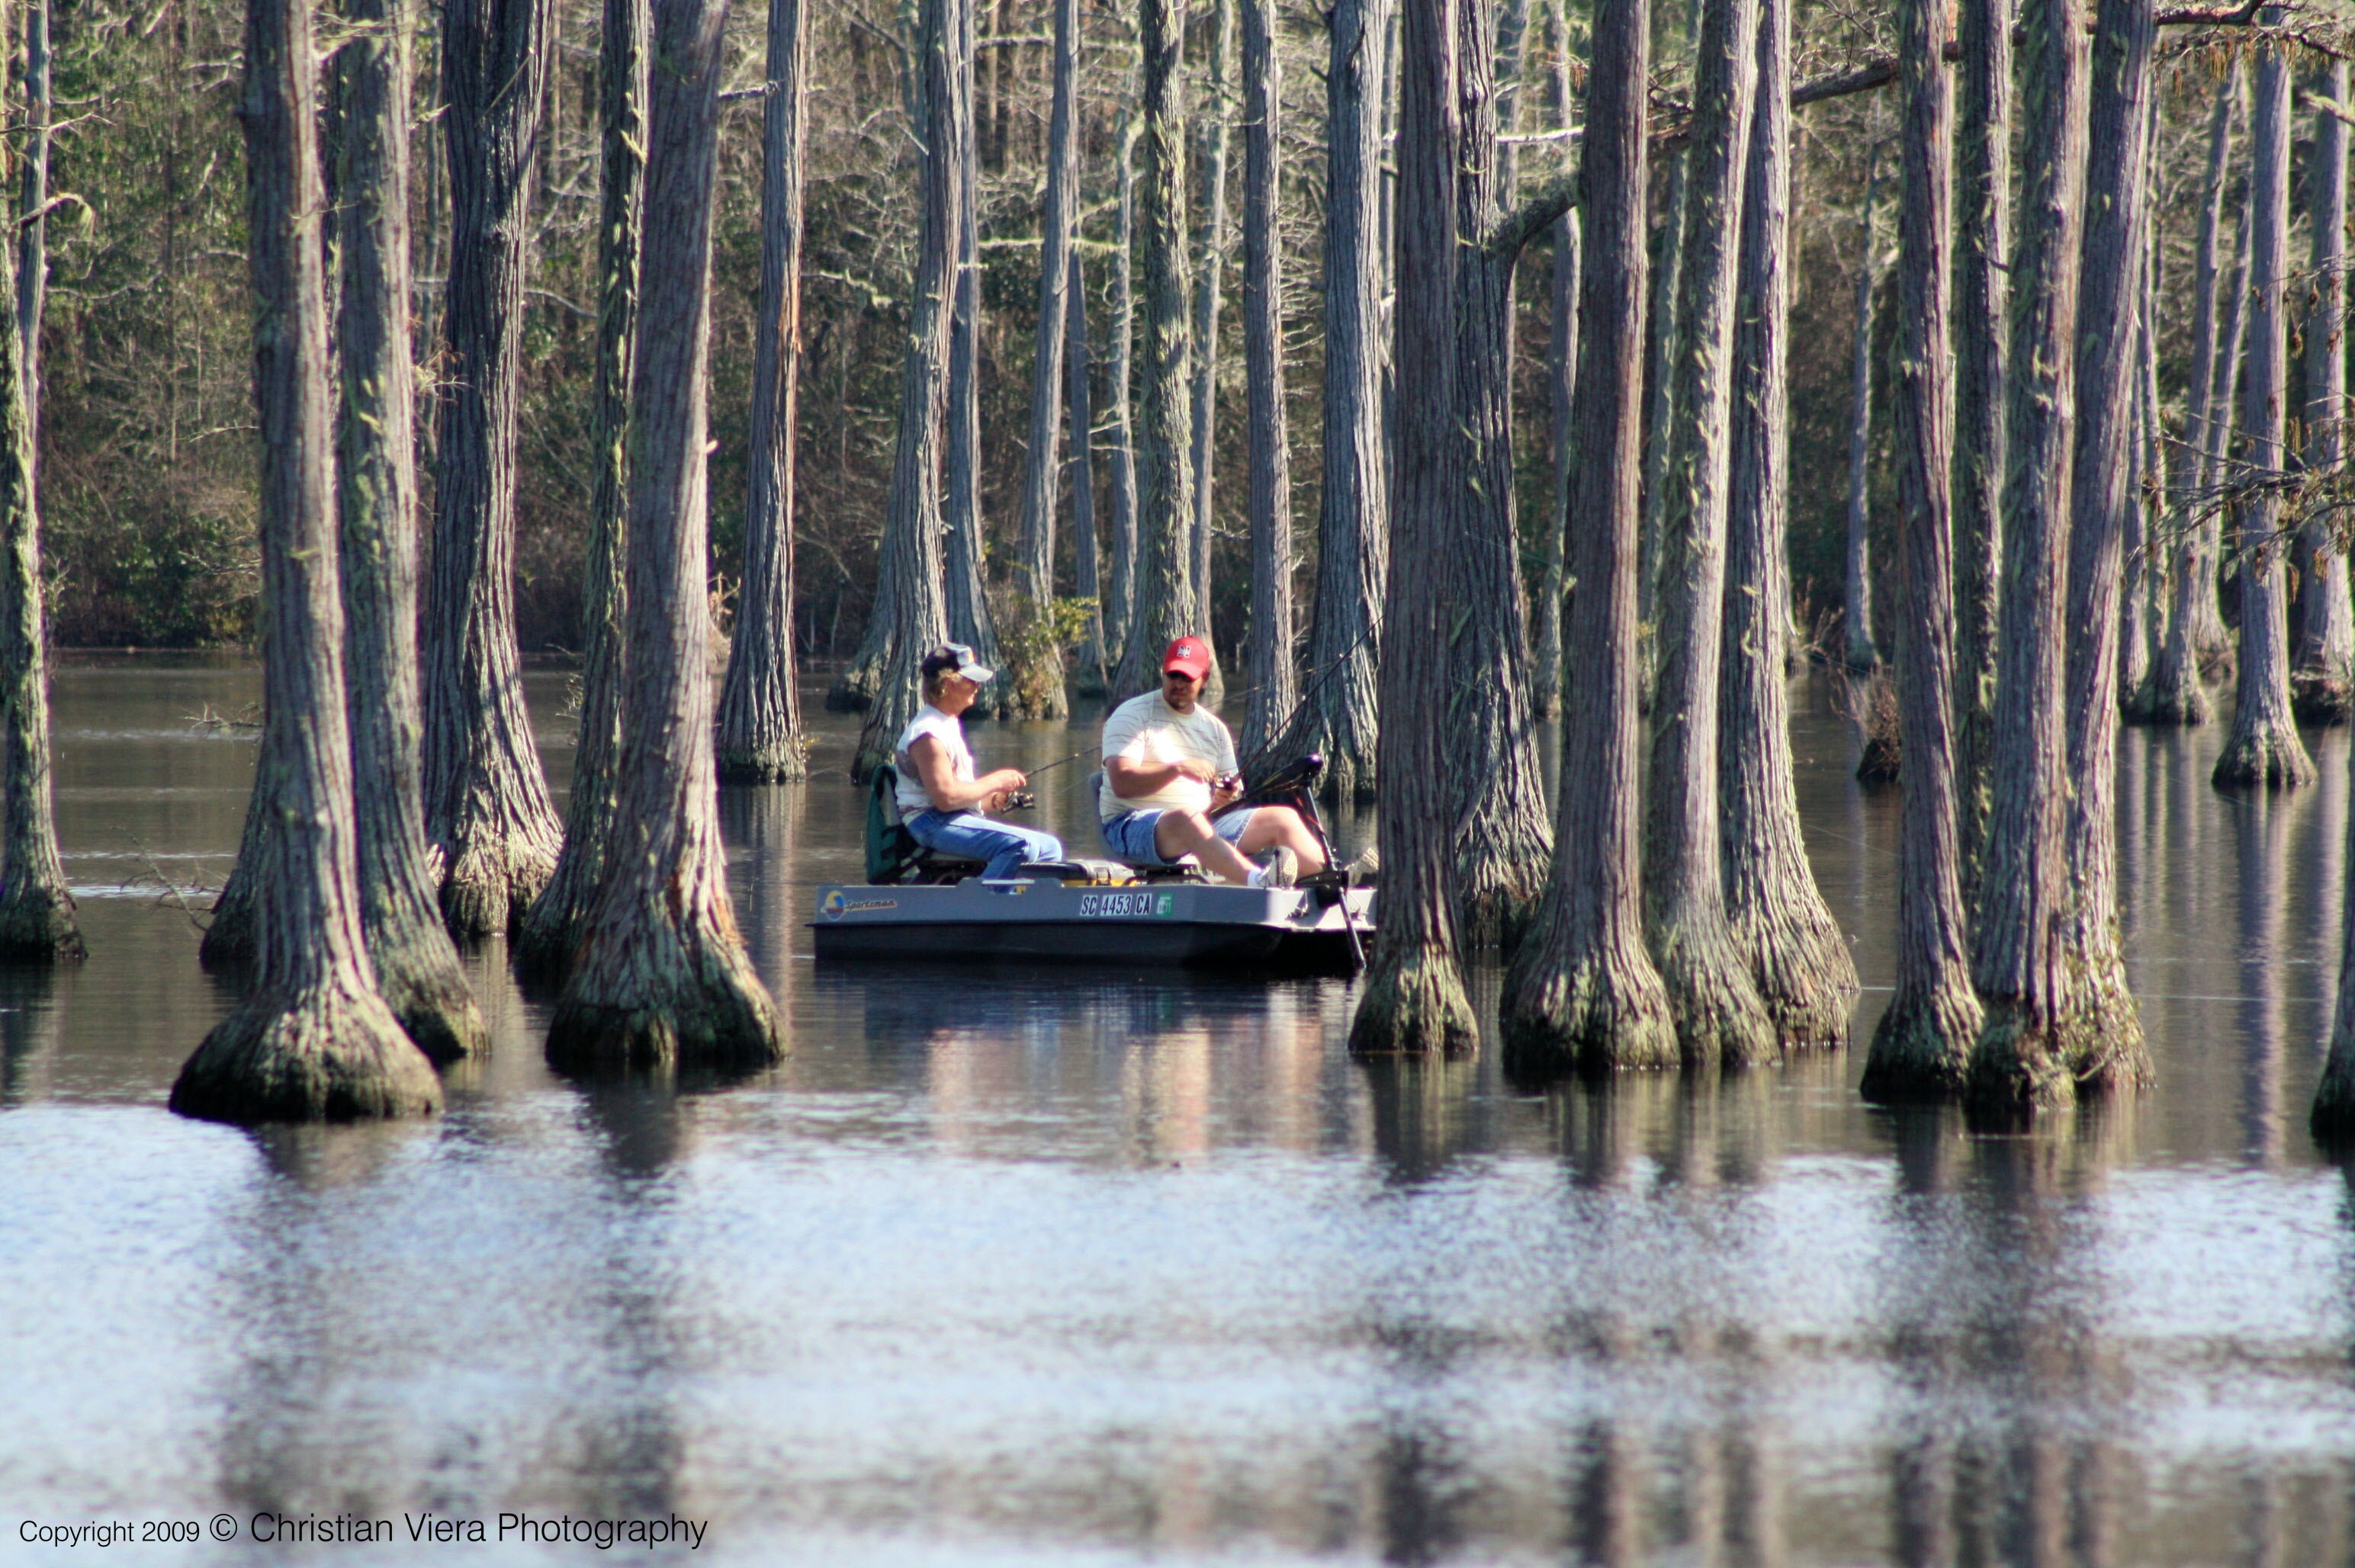 One man s junk cherokee county sc - Tall Cypress Trees That Enchant The Eye A Civil War Era Mill Pond That Abounds With Wildlife Some Of The Best Kayaking In South Carolina And A One And A